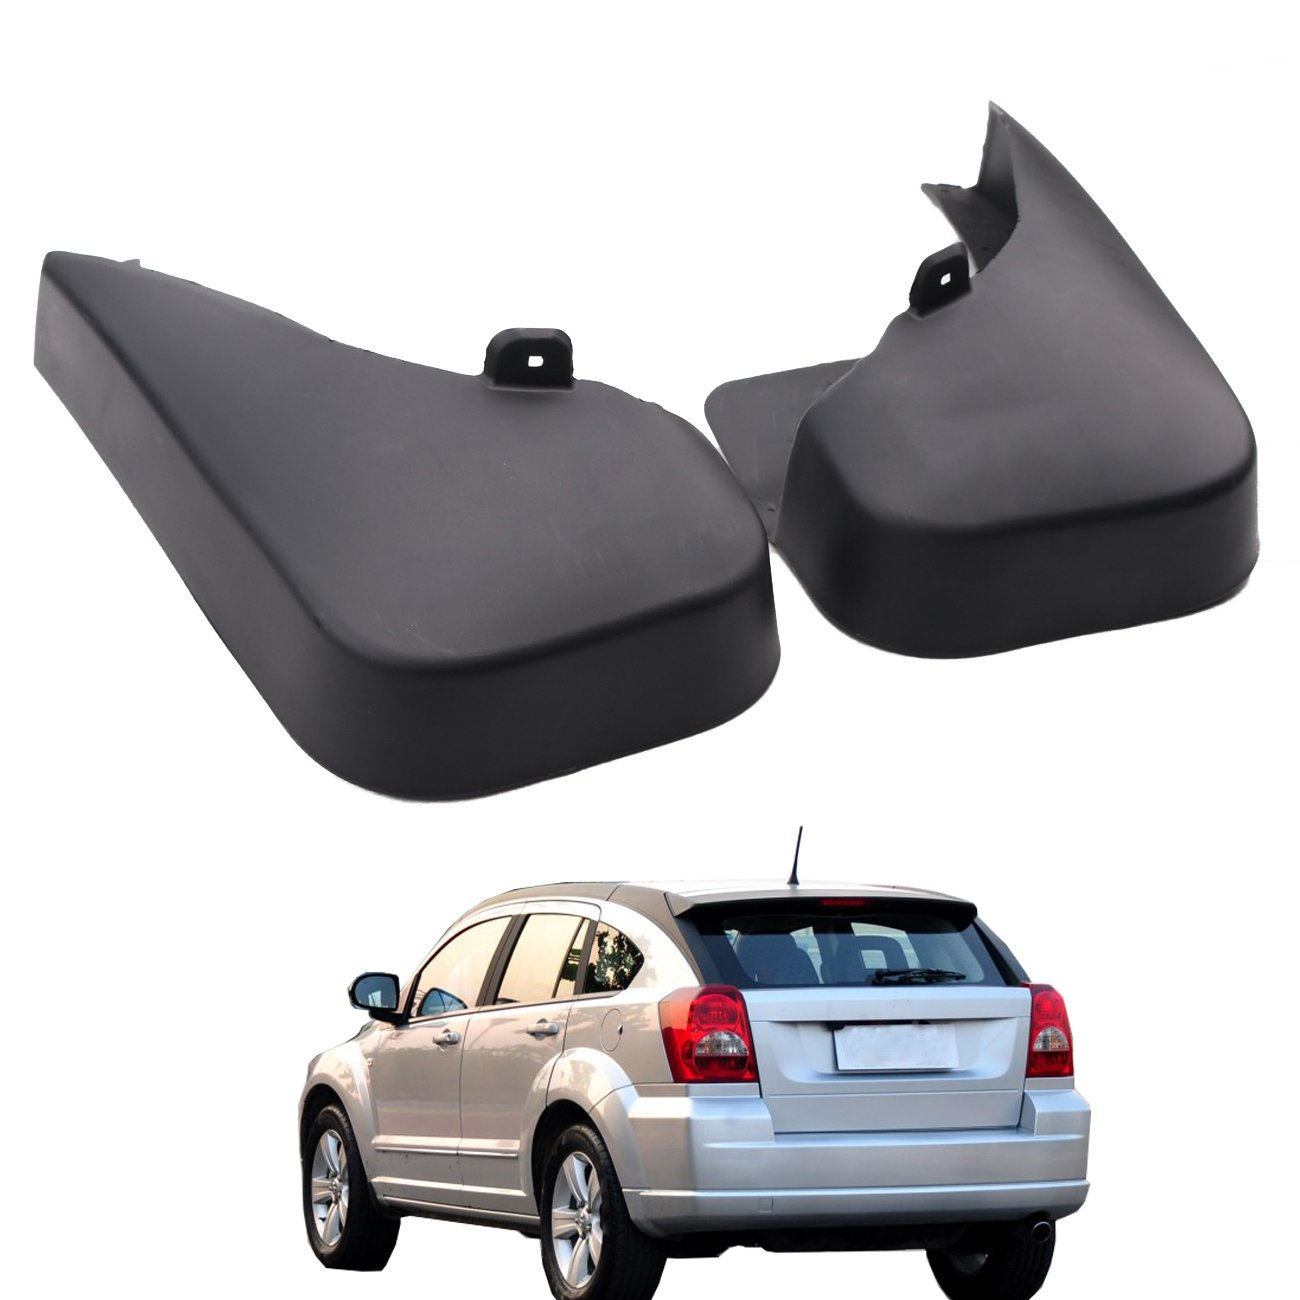 Splash Guards Aletas de barro con logotipo de Dodge para Dodge Caliber 2007-2012: Amazon.es: Coche y moto